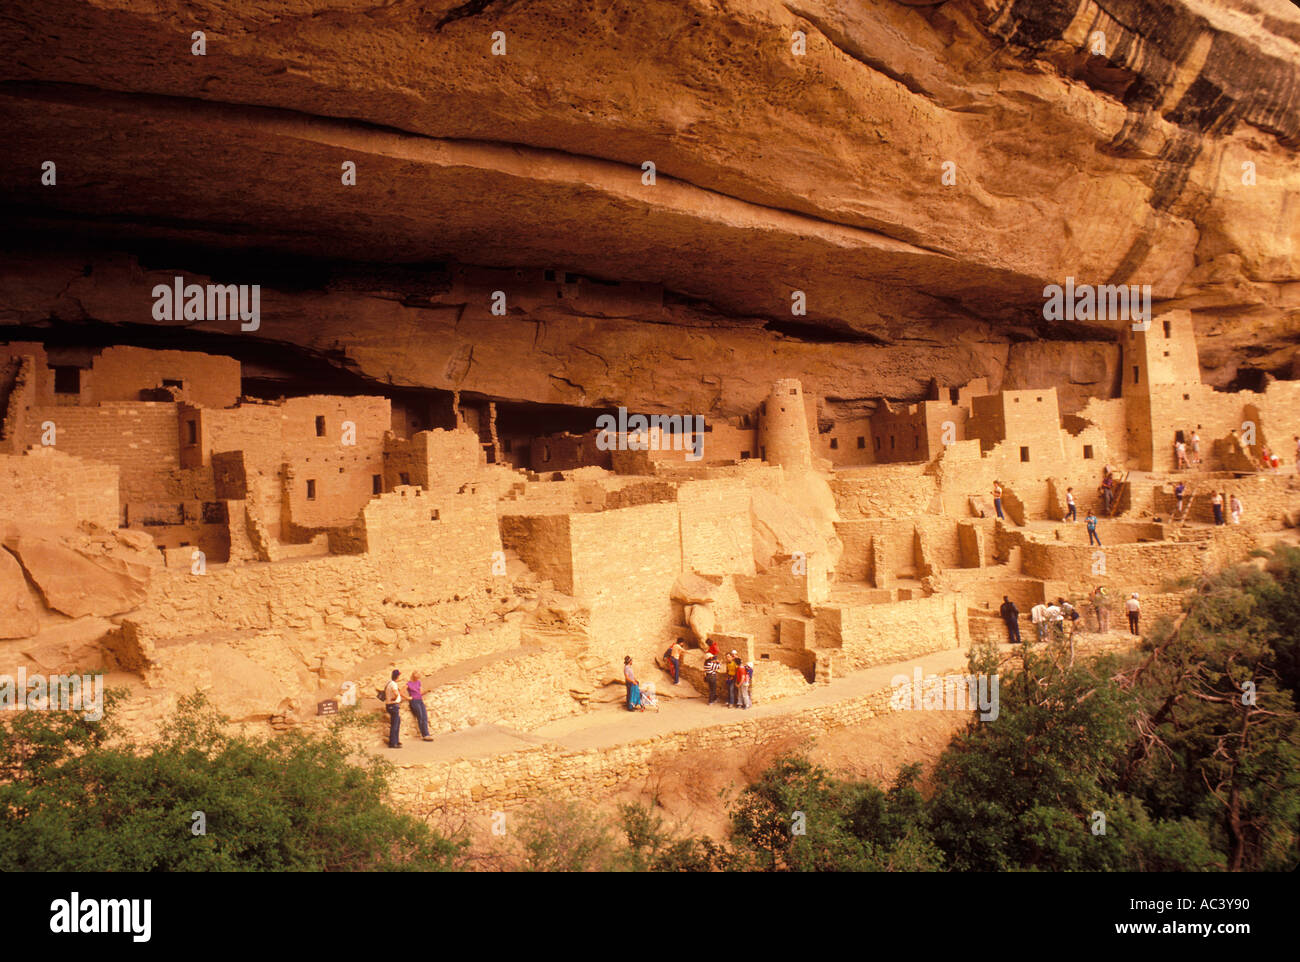 Anasazi Indian ruins Cliff Palace Mesa Verde National Park Colorado - Stock Image